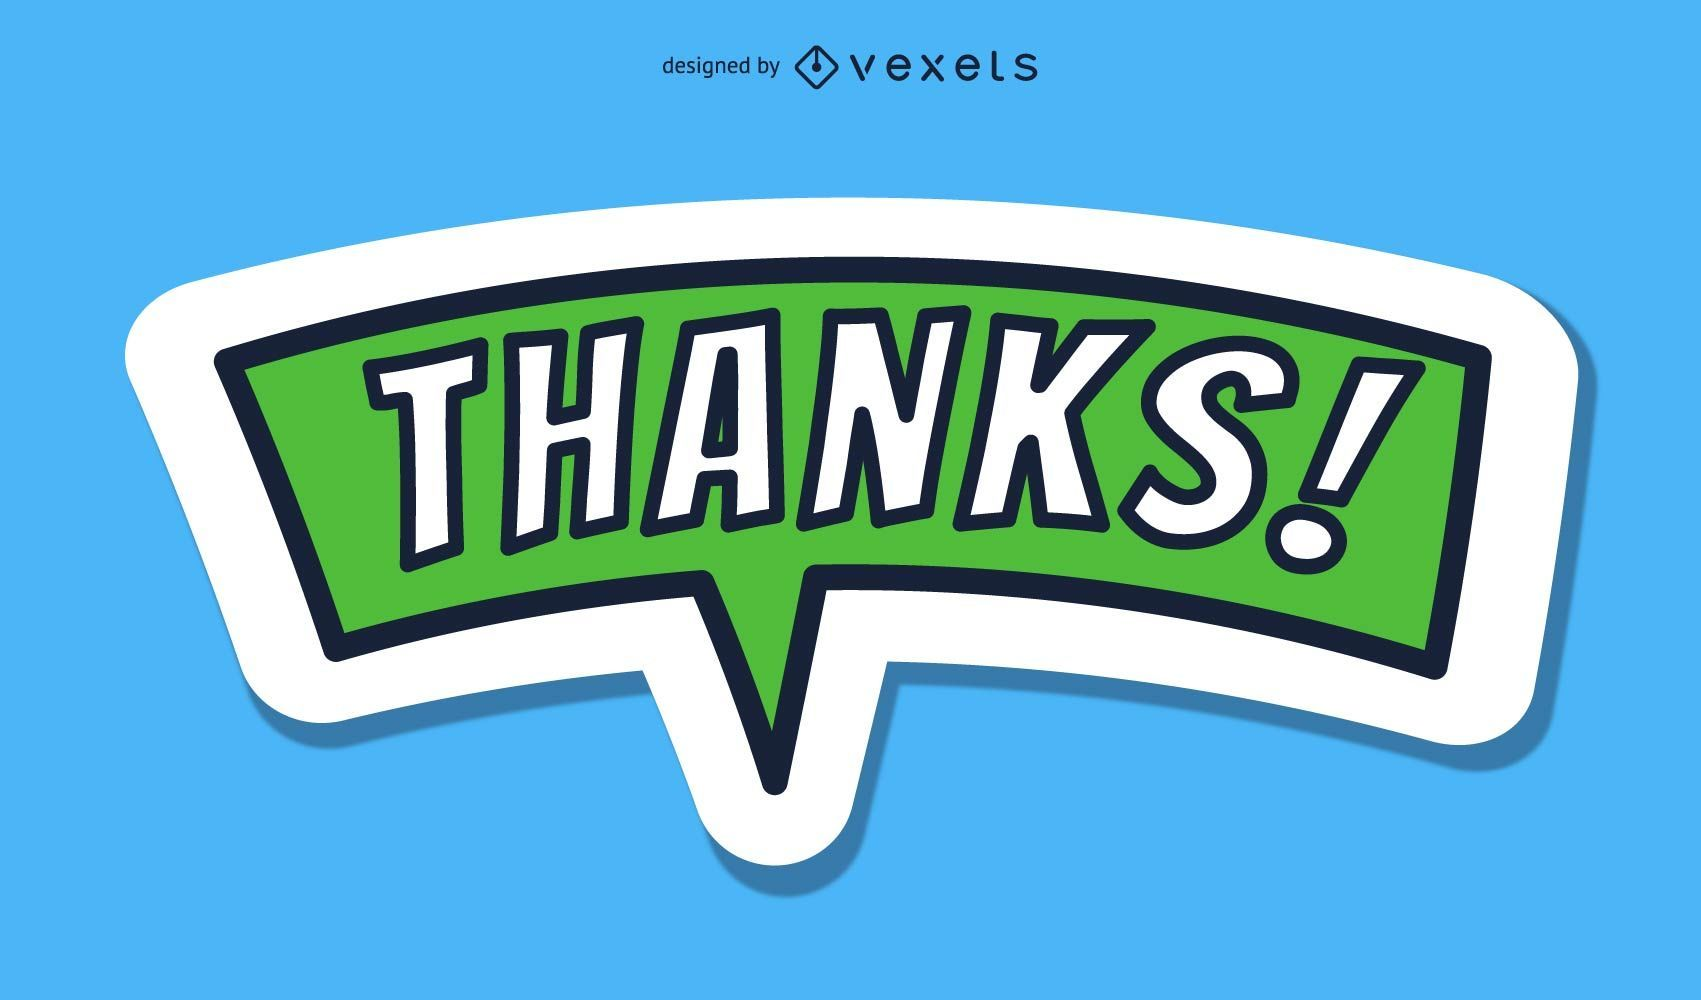 Say Thanks Vectored Words